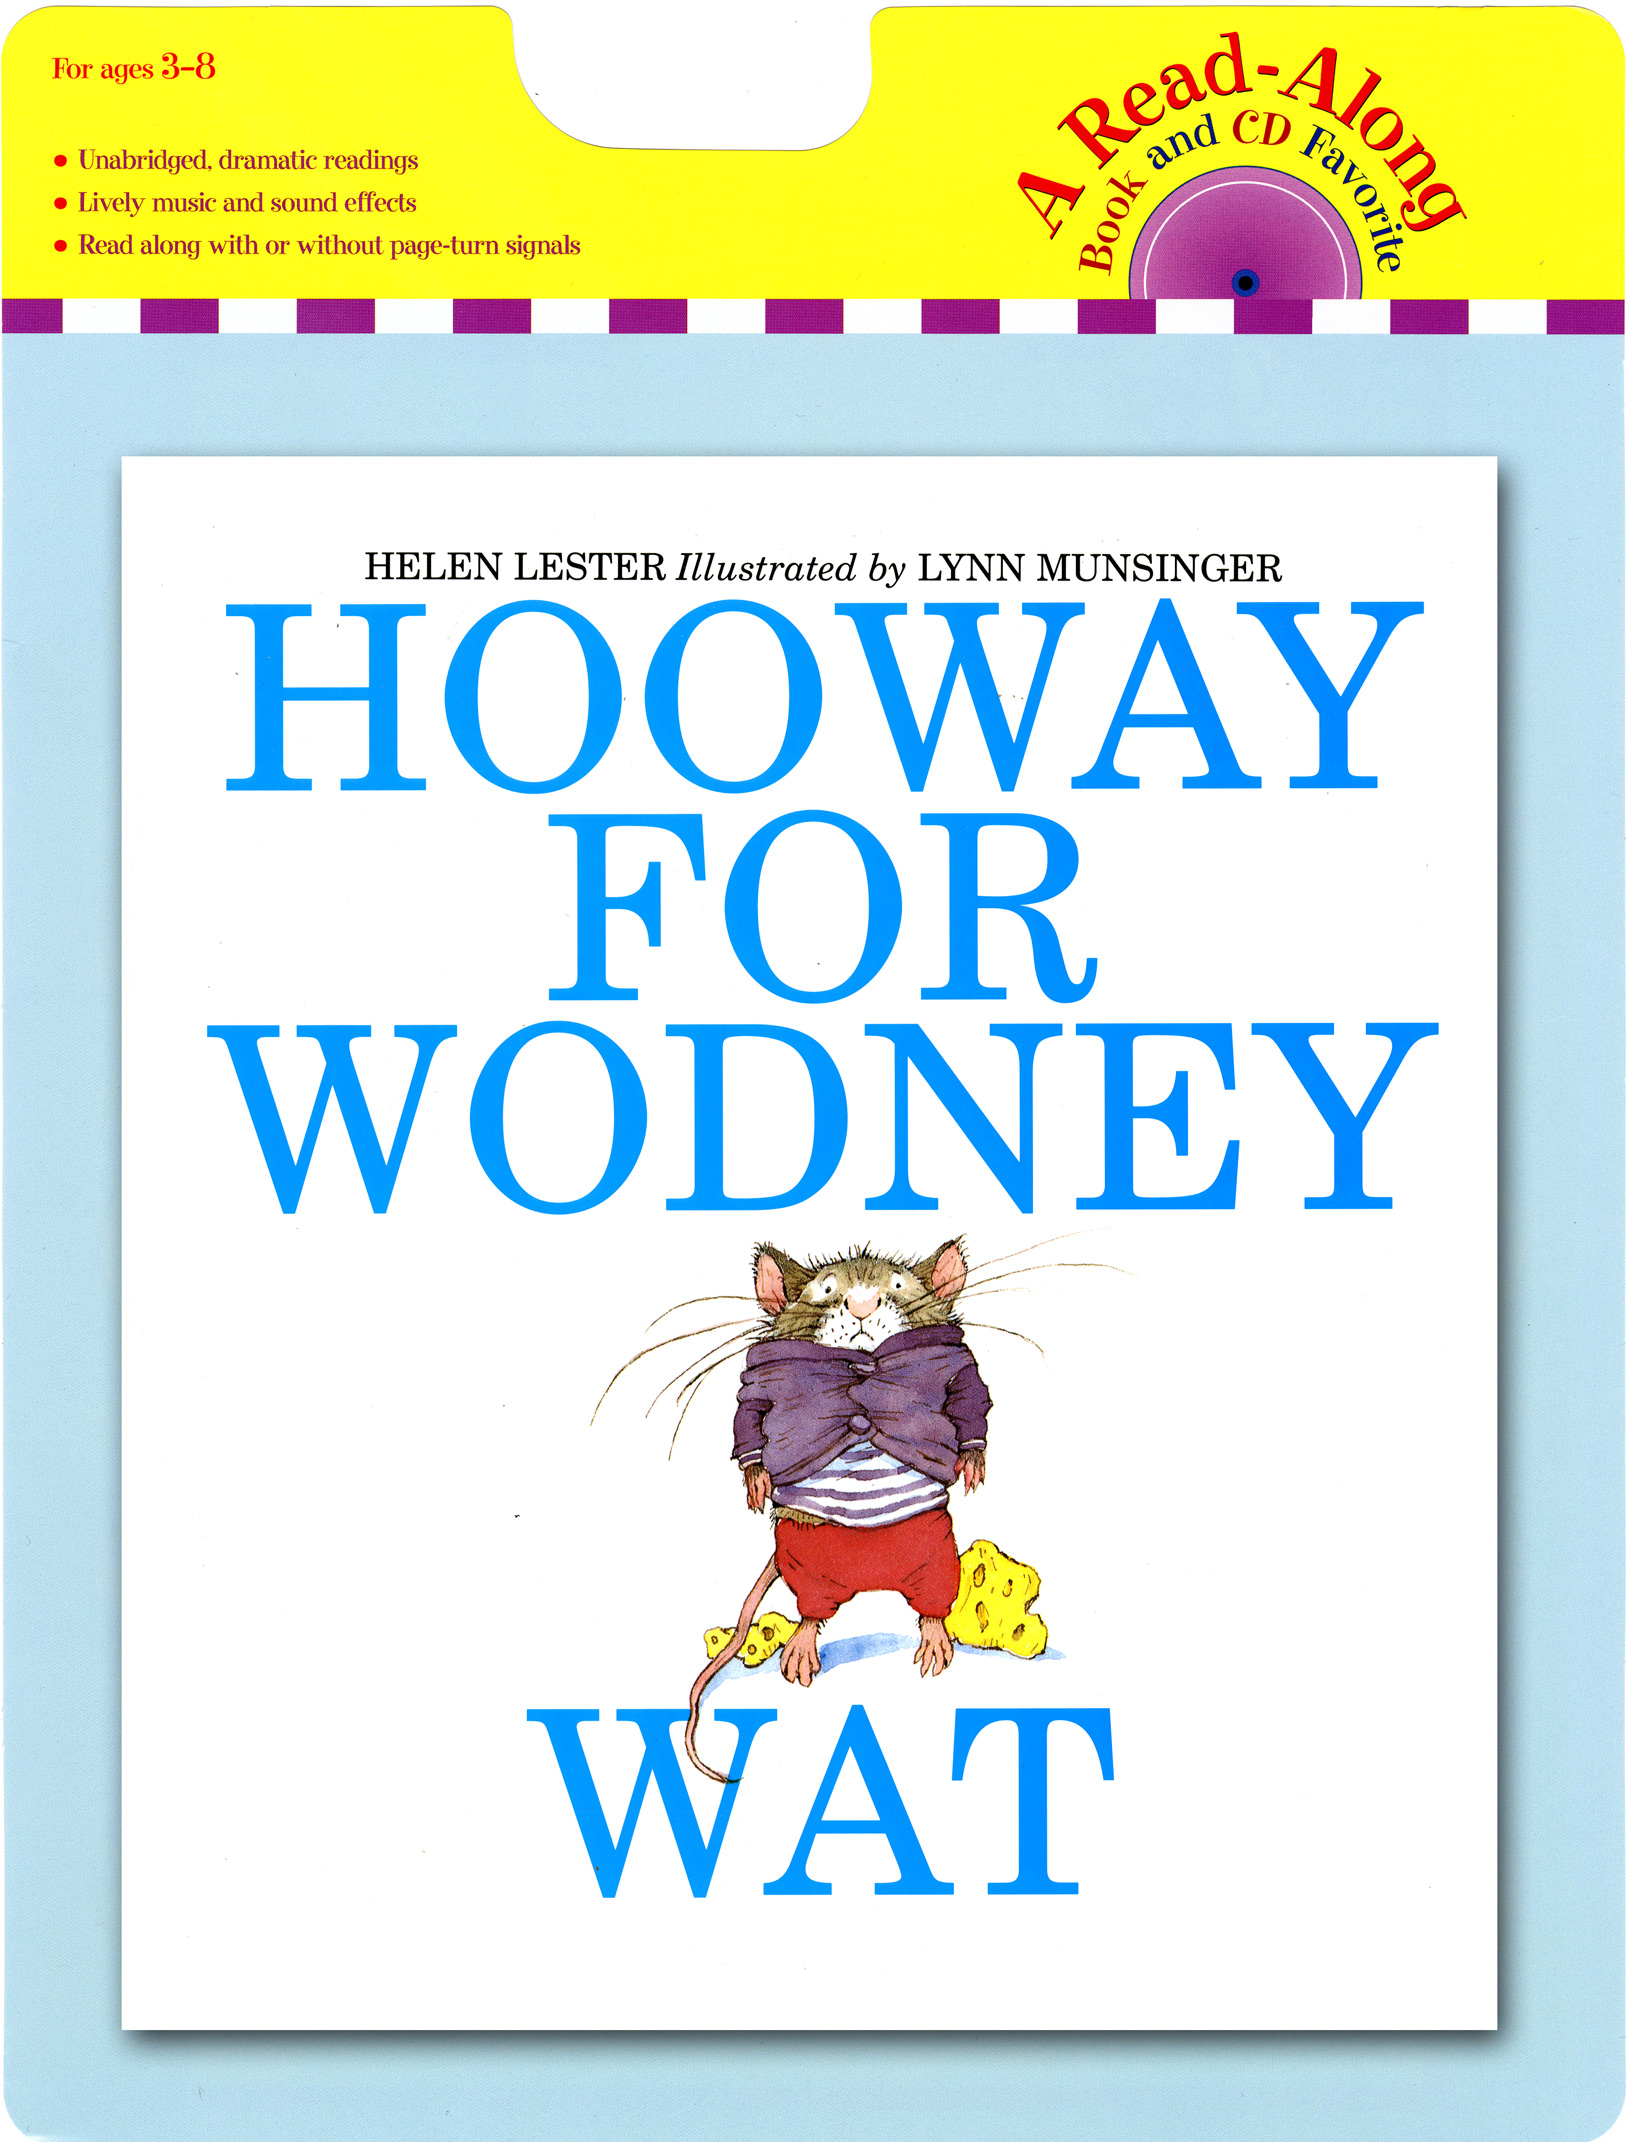 Hooway for Wodney Wat book and CD-9780547552170